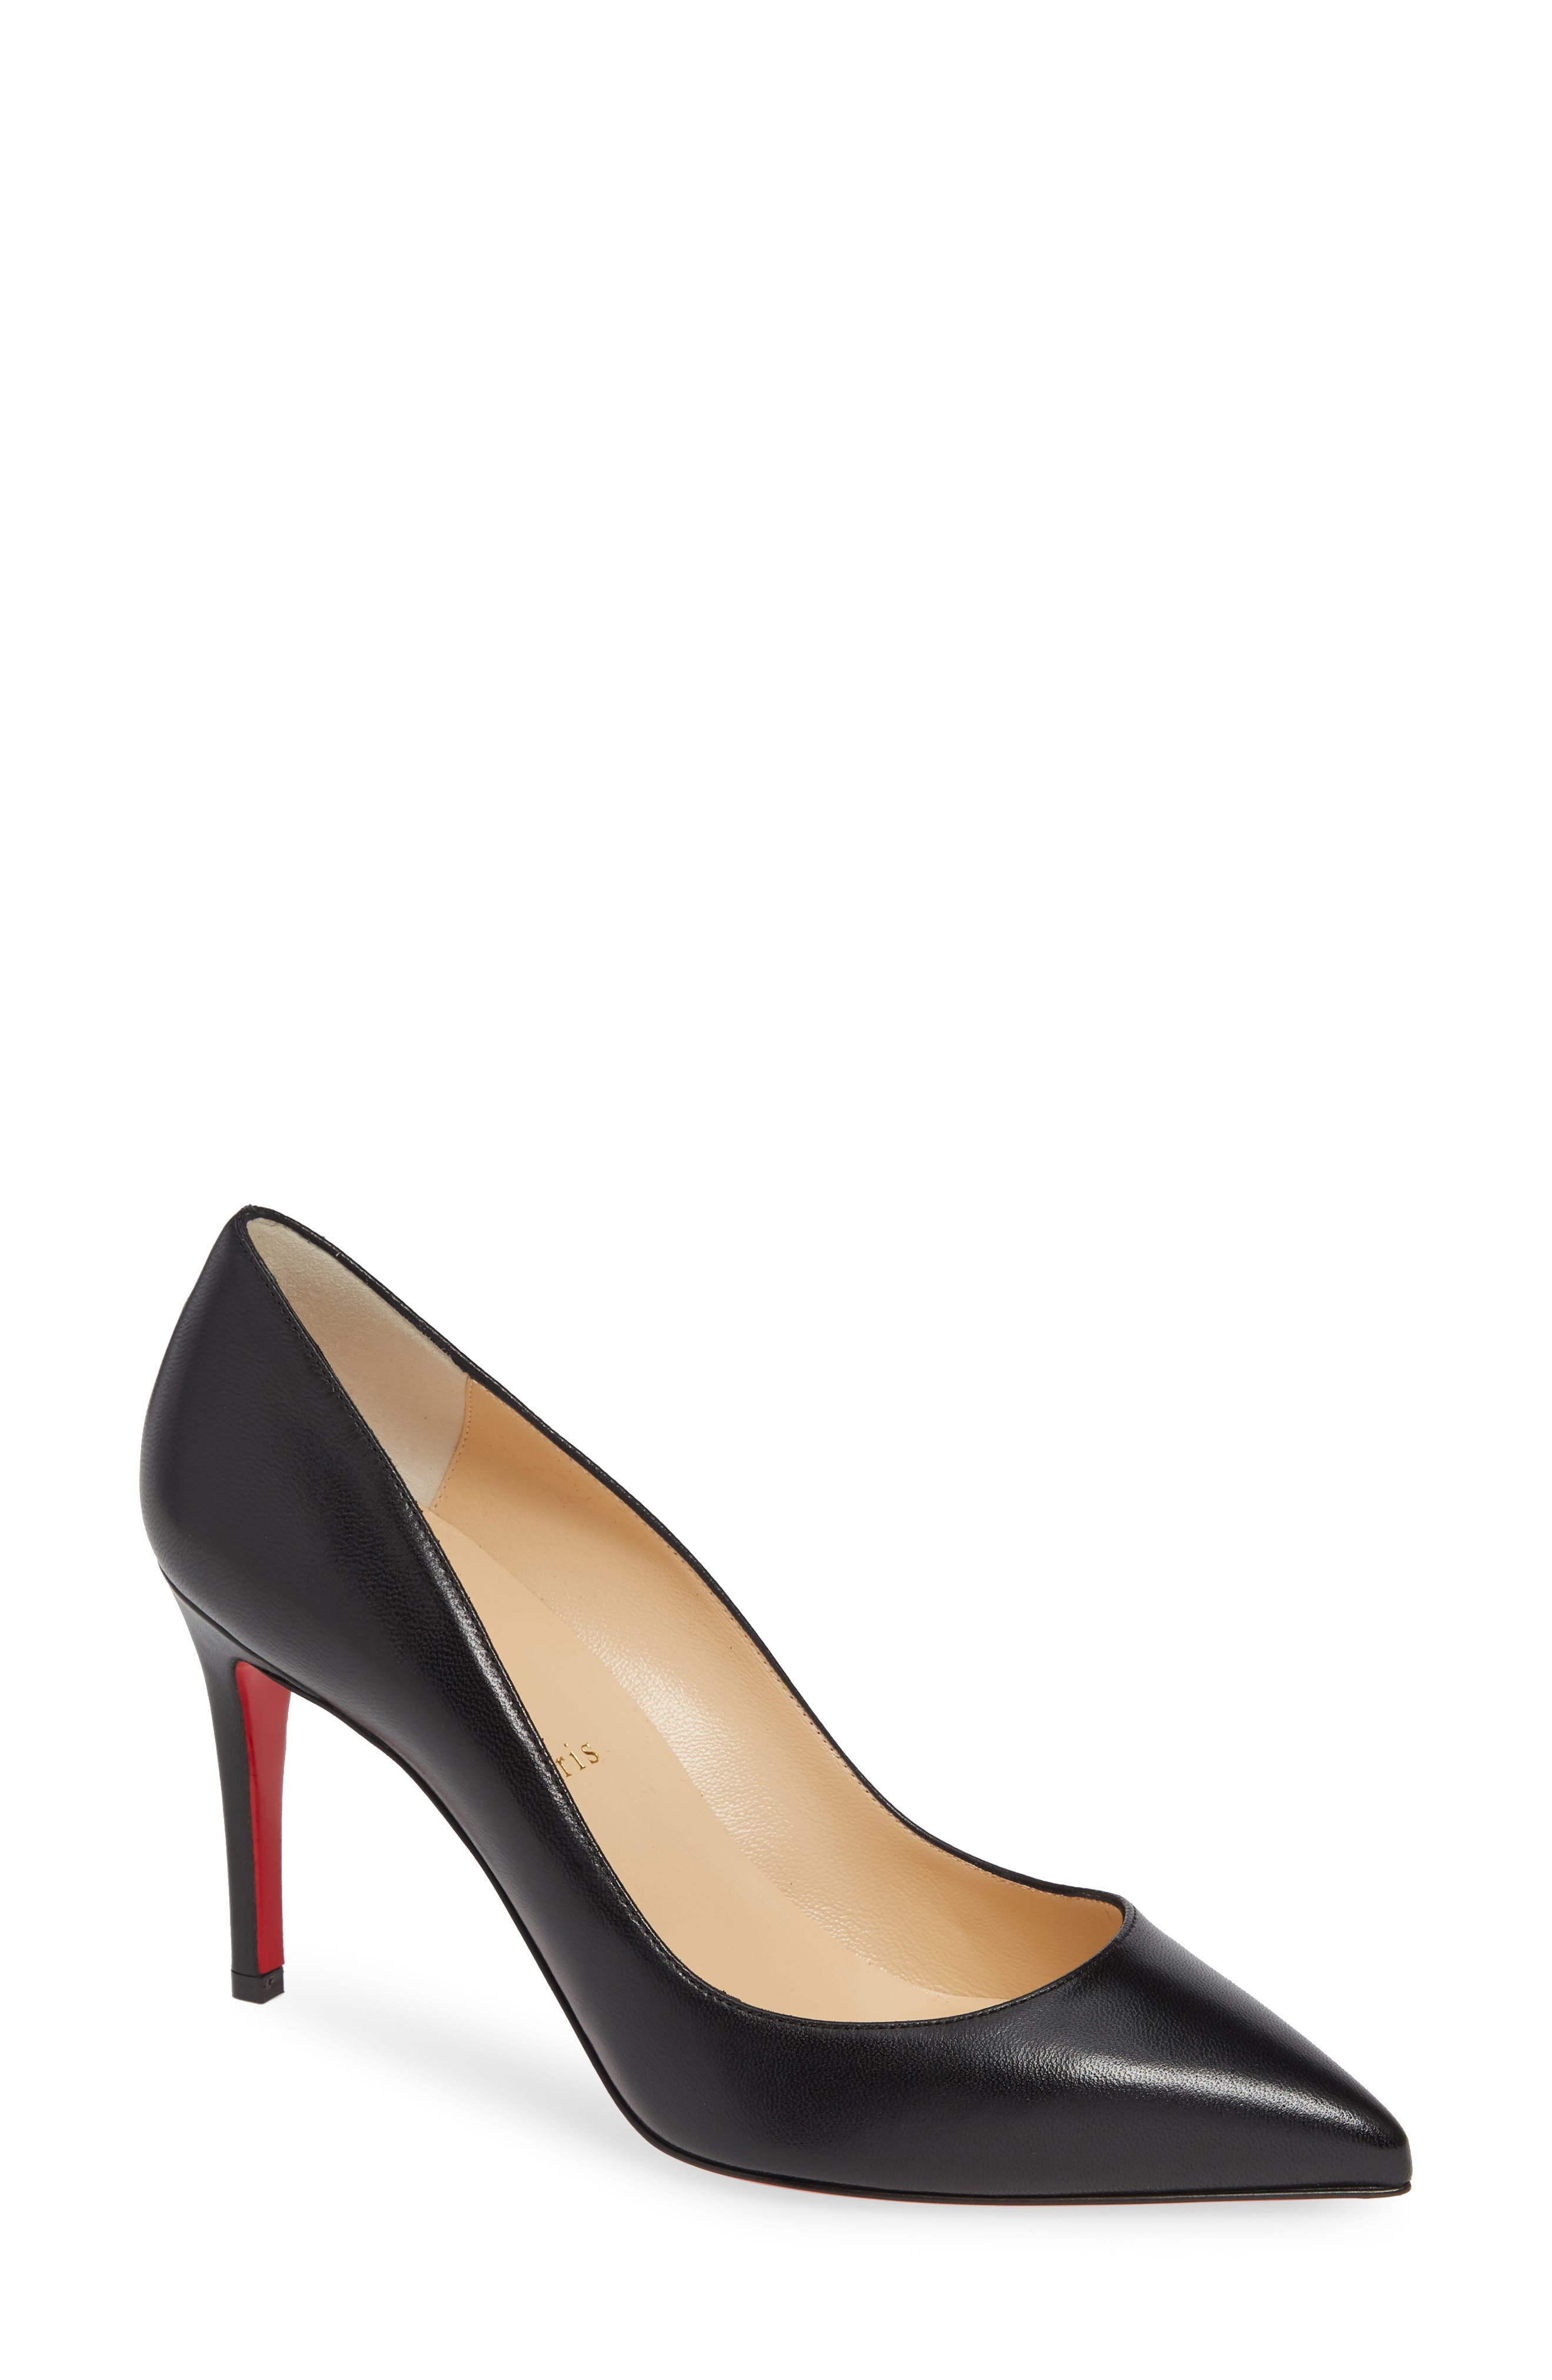 Pigalle Pointy Toe Pump,                             Main thumbnail 1, color,                             BLACK